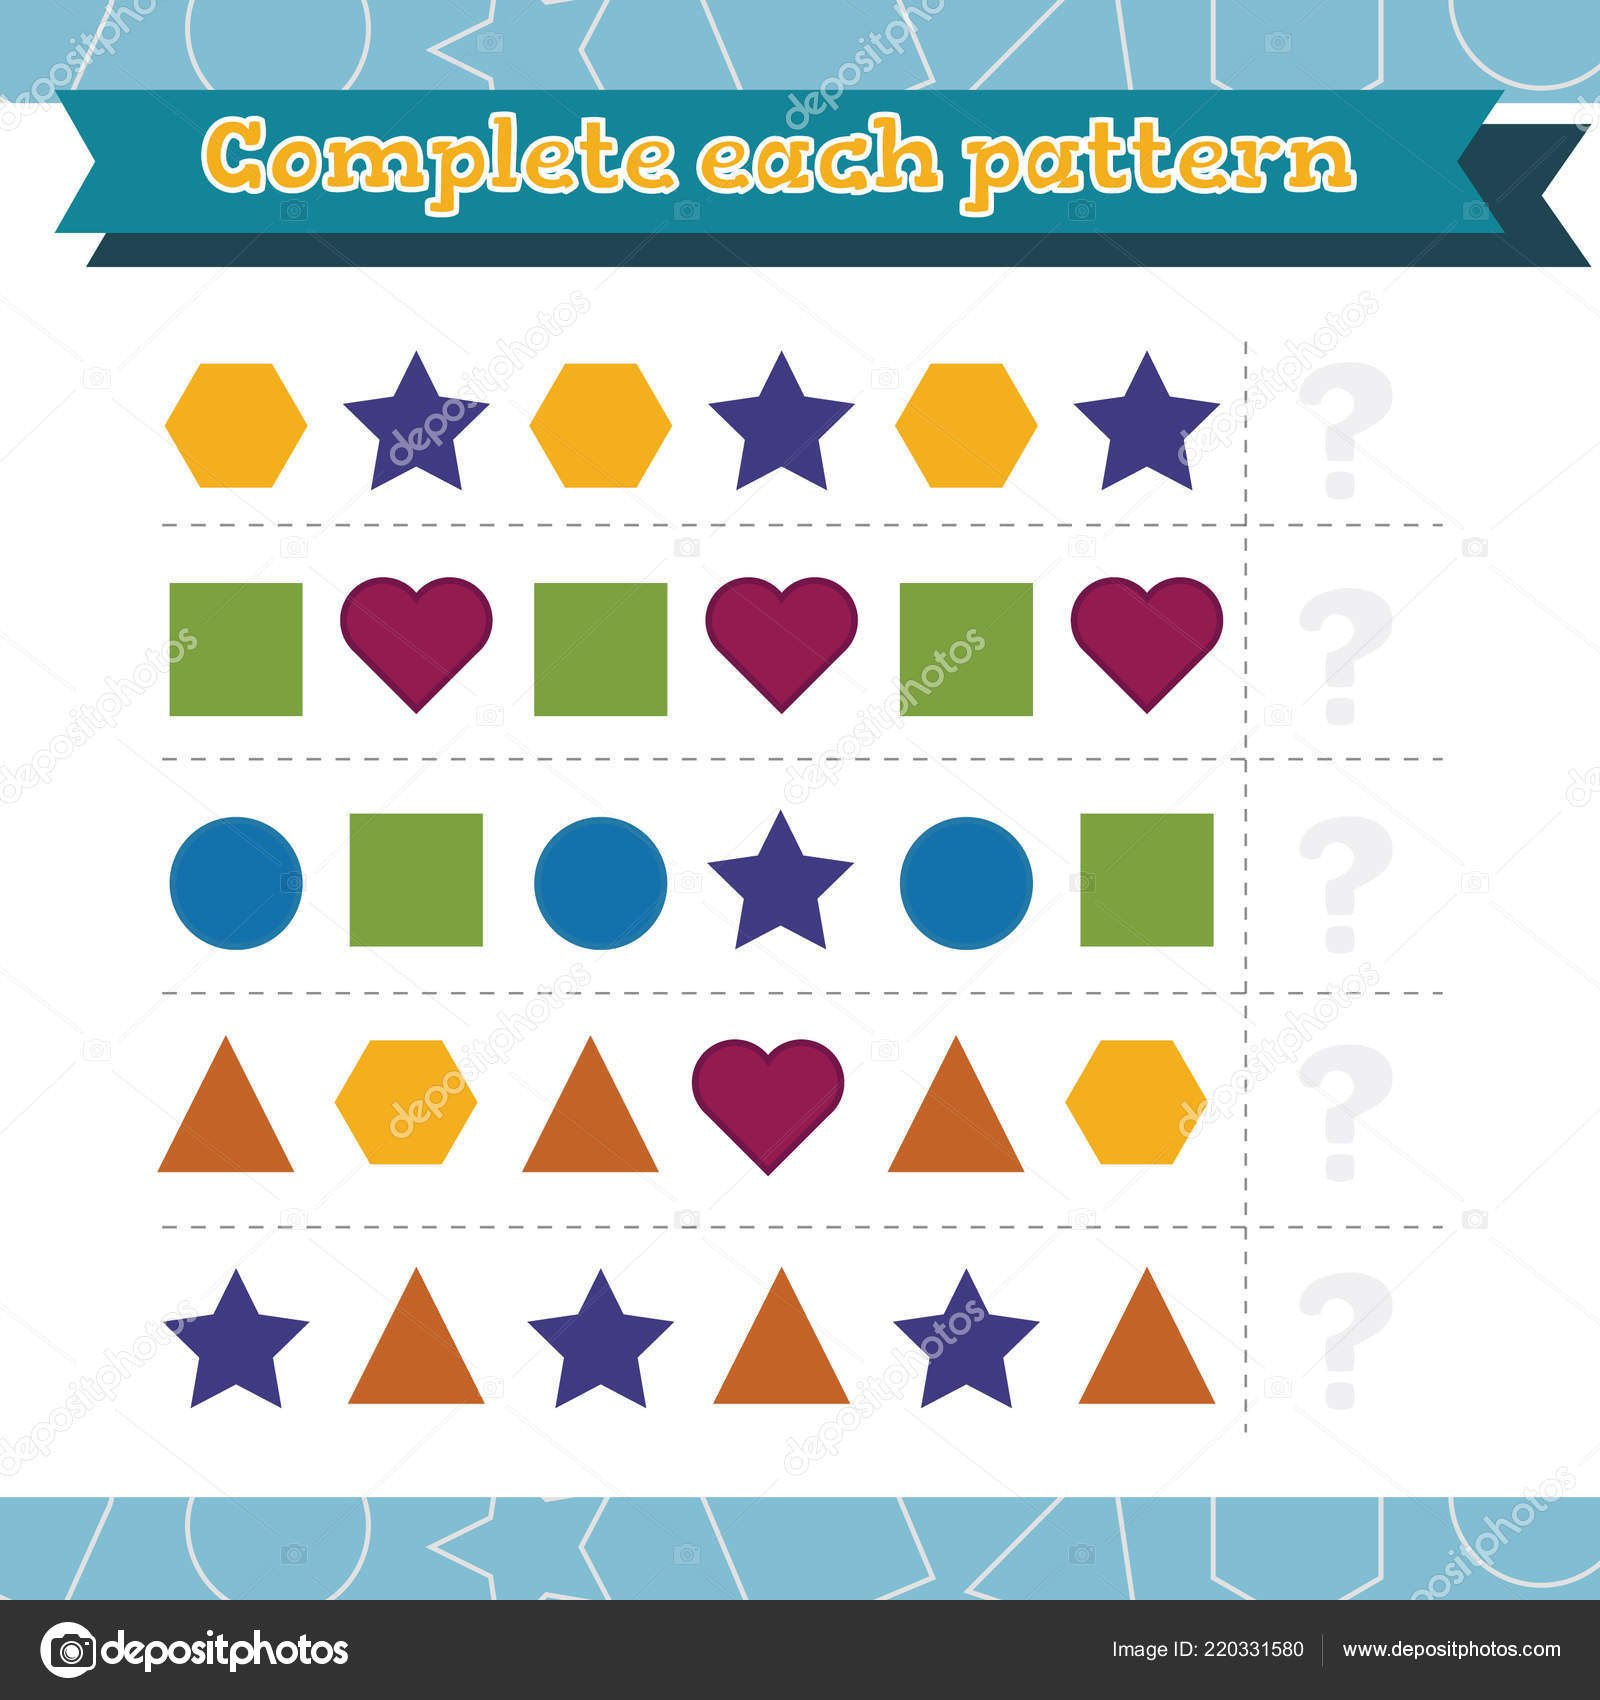 Geometric Shapes Patterns Worksheets Game for Preschool Children Learn Shapes and Geometric Figures Plete Each Pattern Preschool or Kindergarten Worksheet Vector Illustration